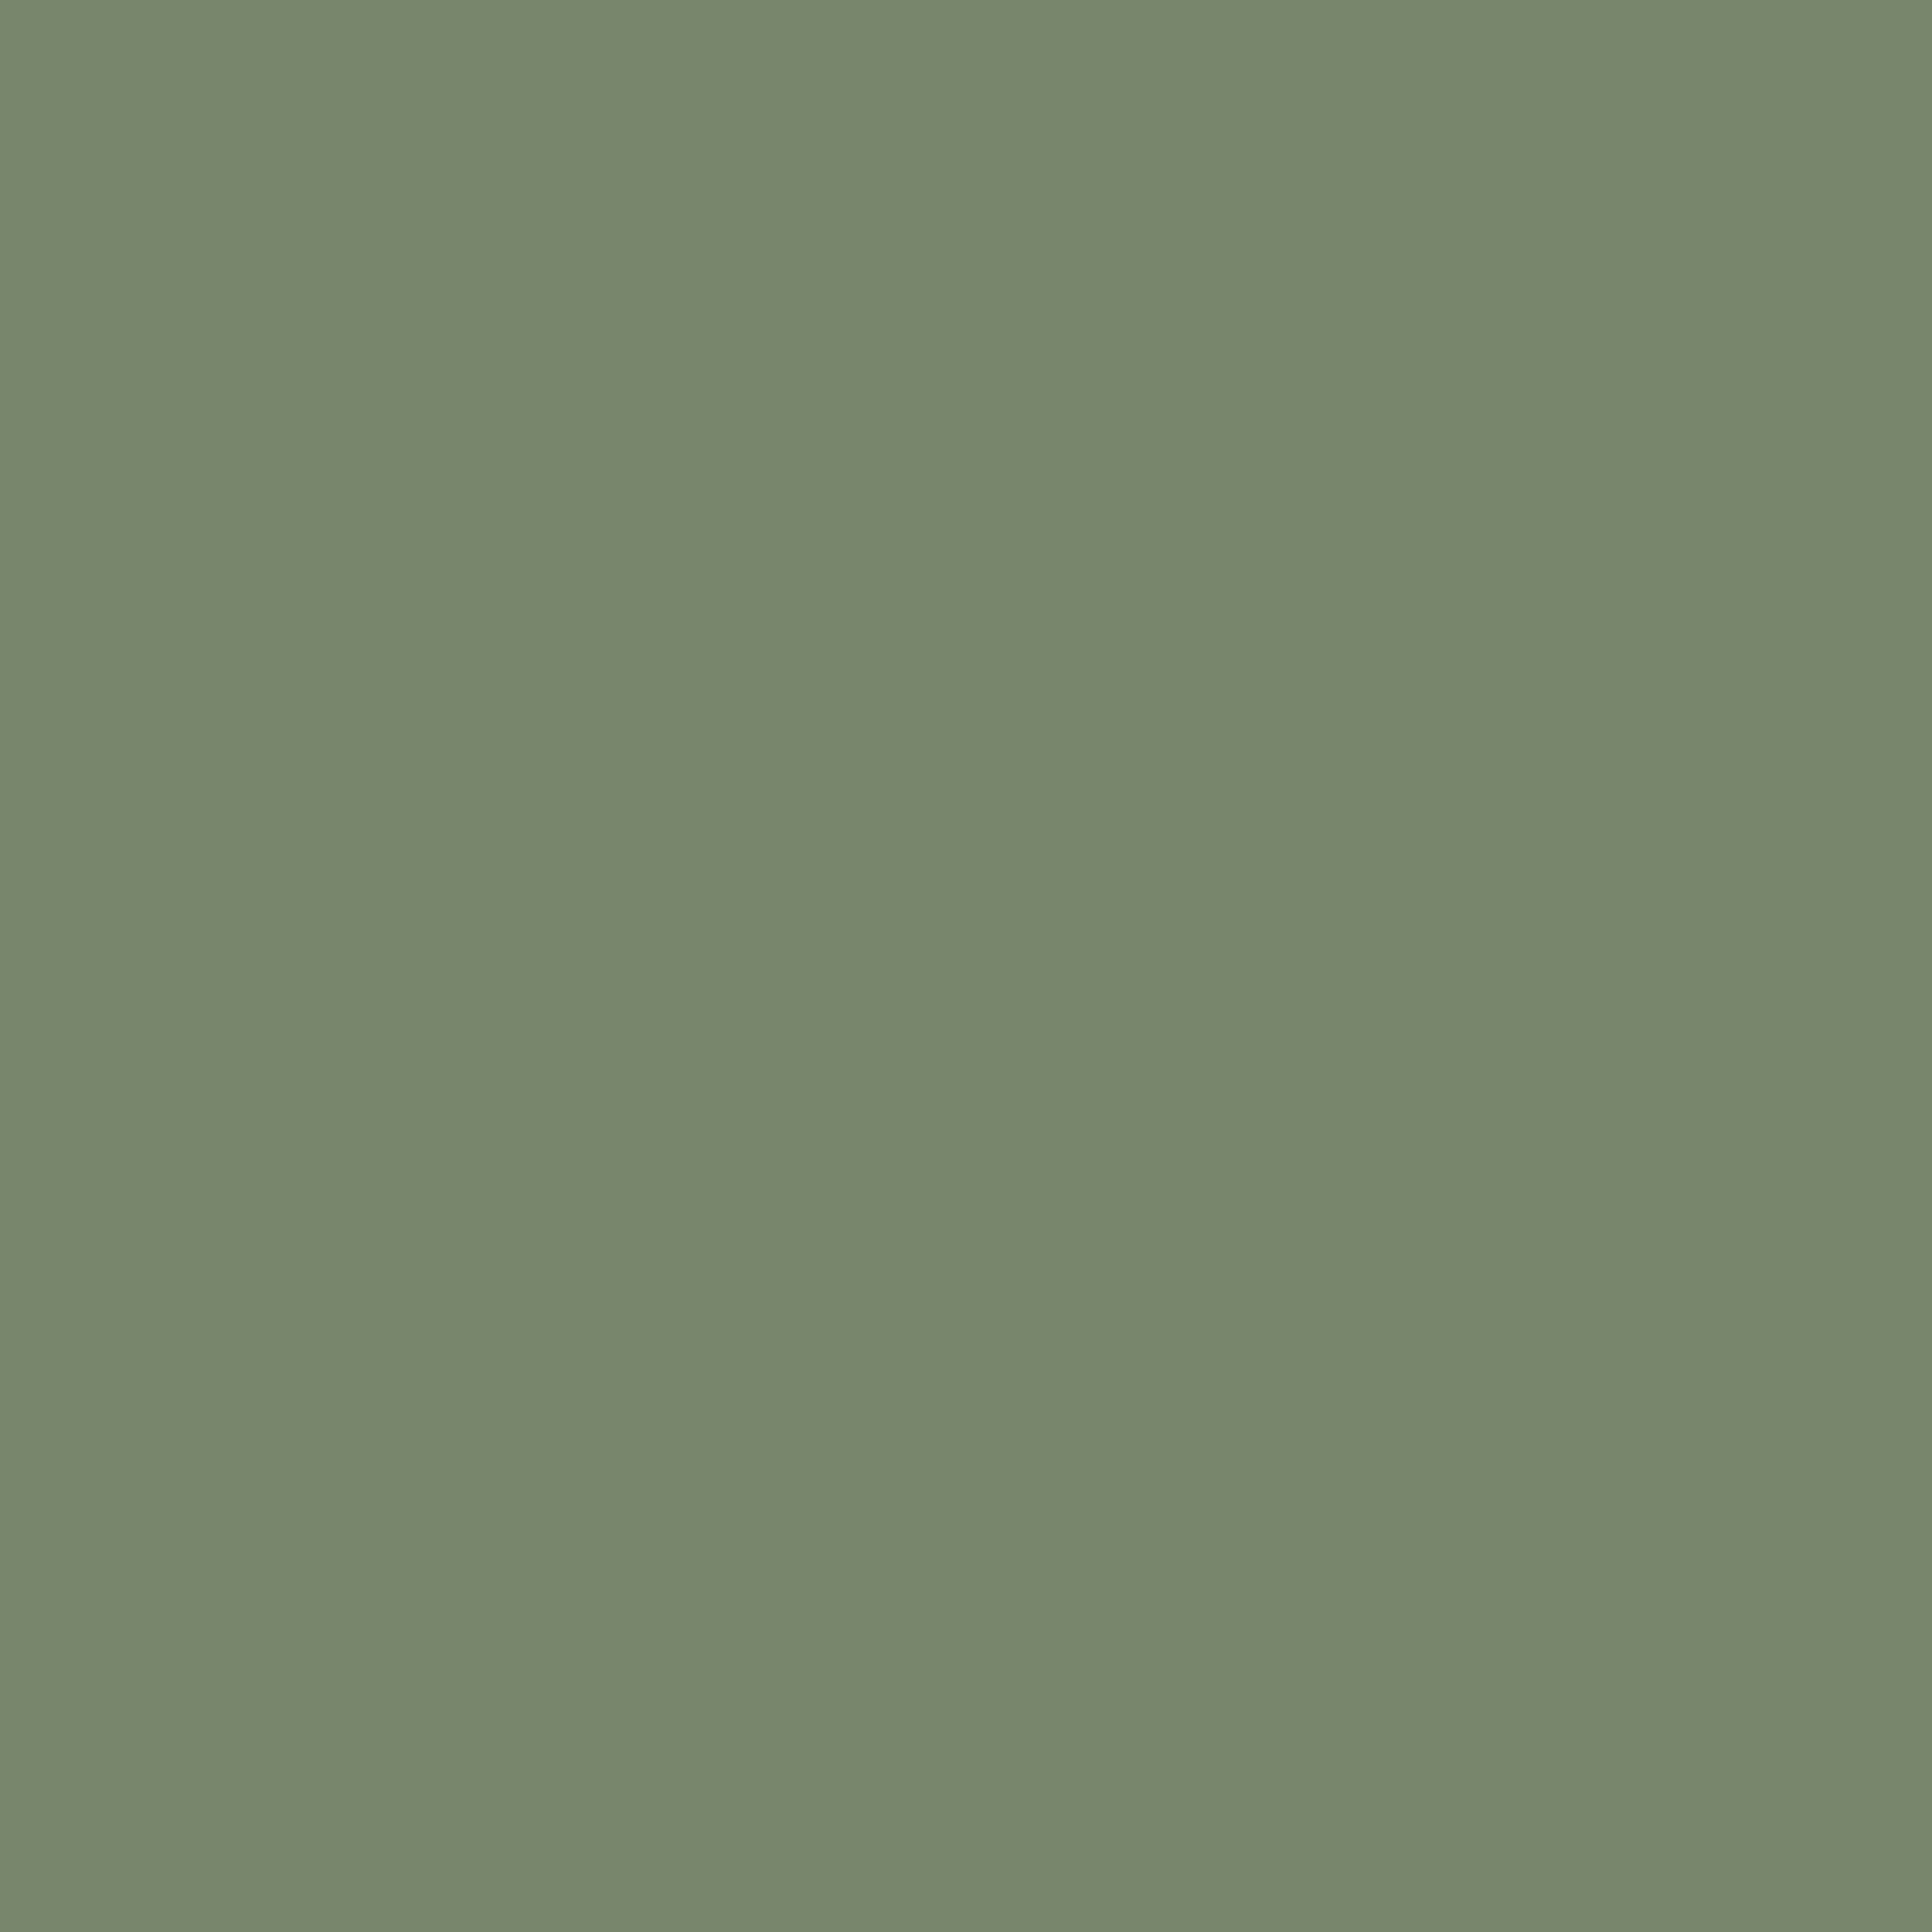 2732x2732 Camouflage Green Solid Color Background